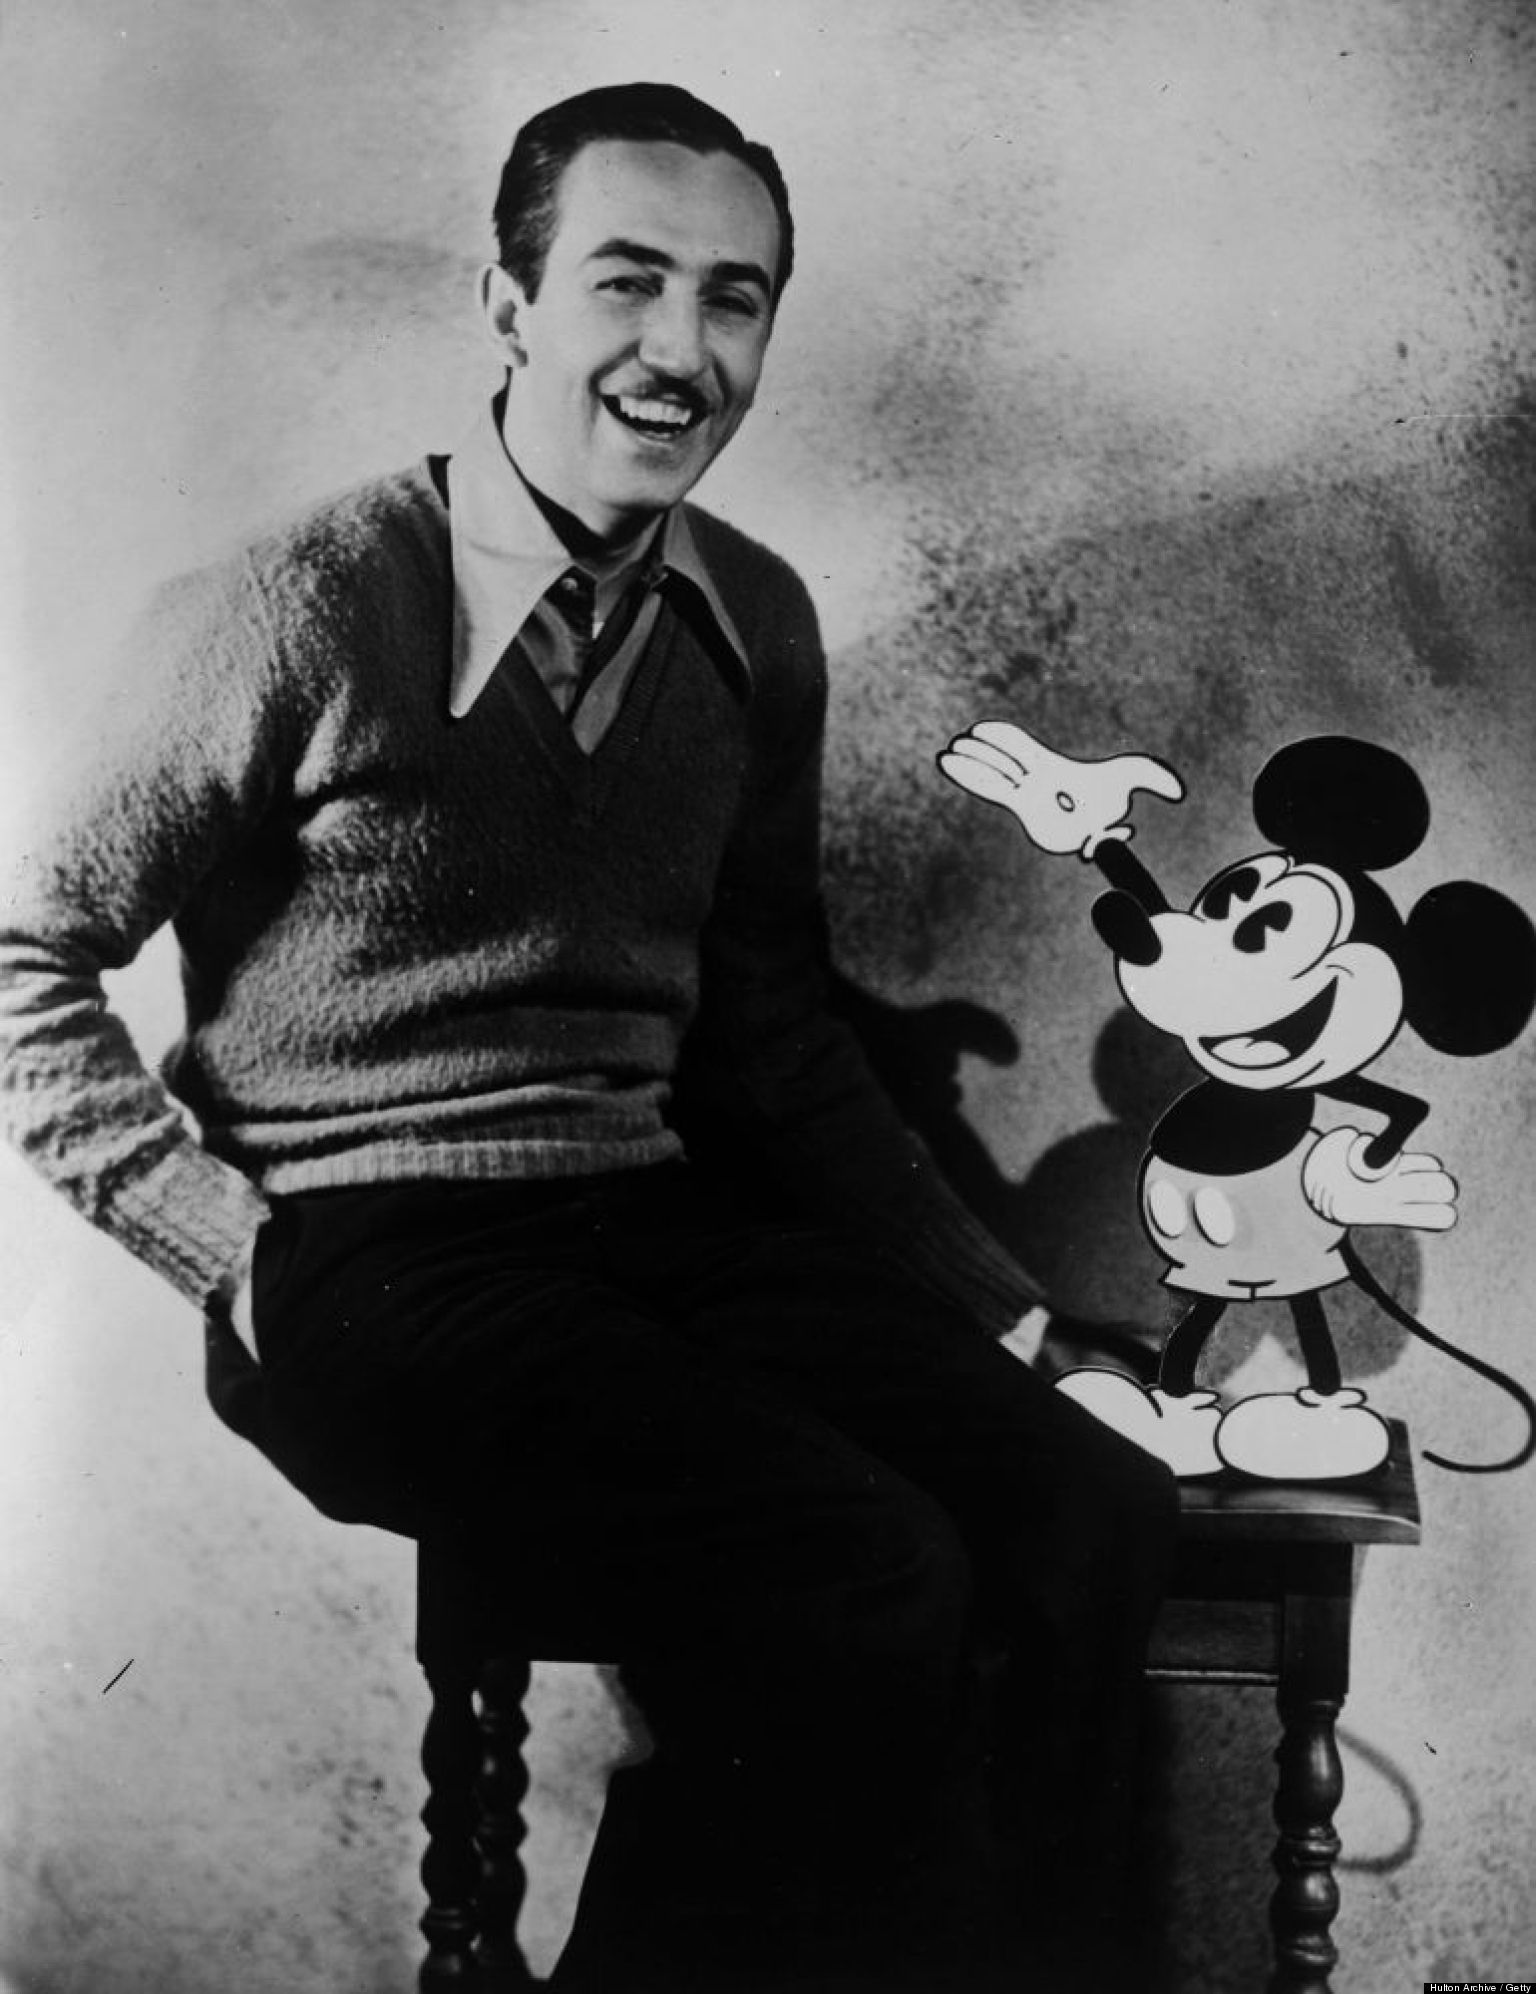 A biography of walter elias disney a creator of mickey mouse